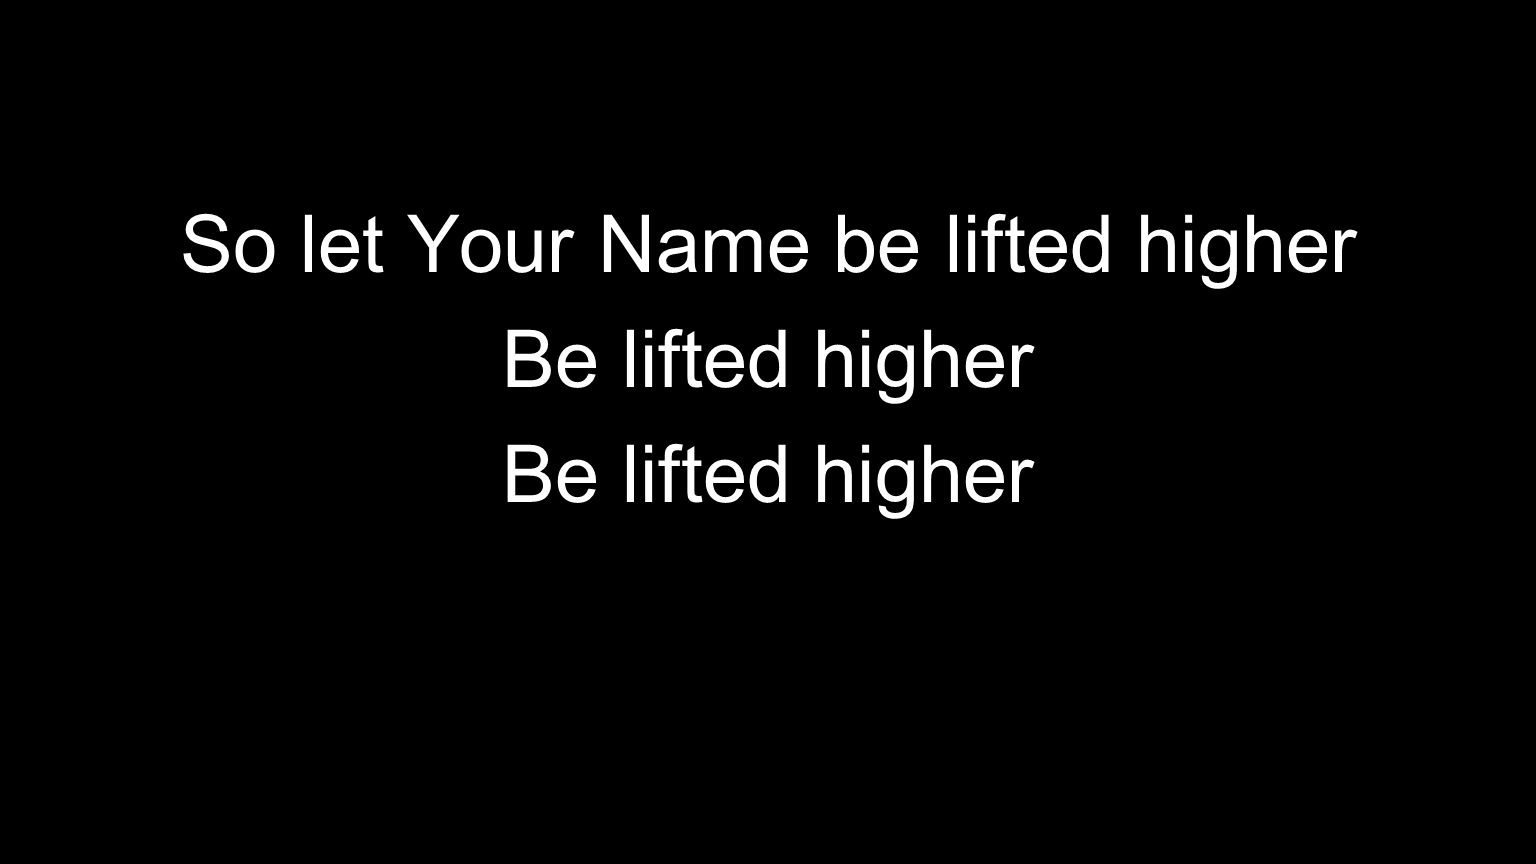 So let Your Name be lifted higher Be lifted higher